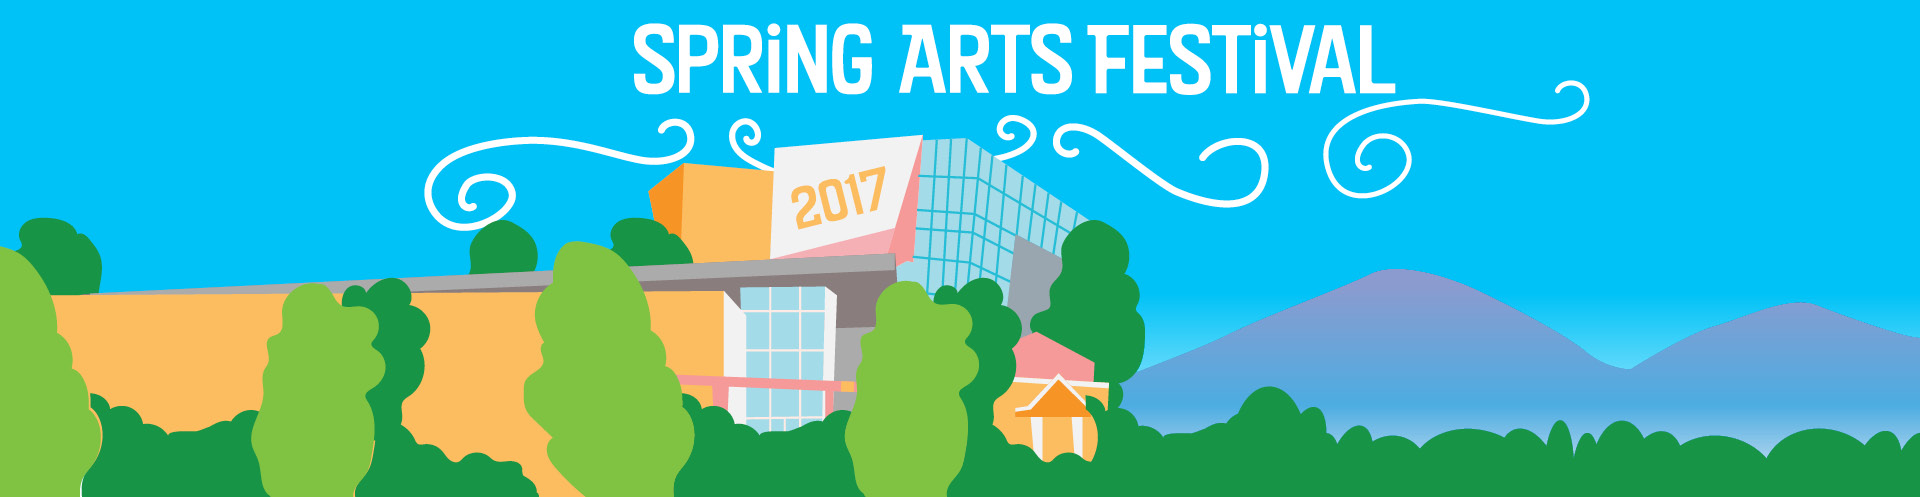 2017 Spring Arts Festival graphic